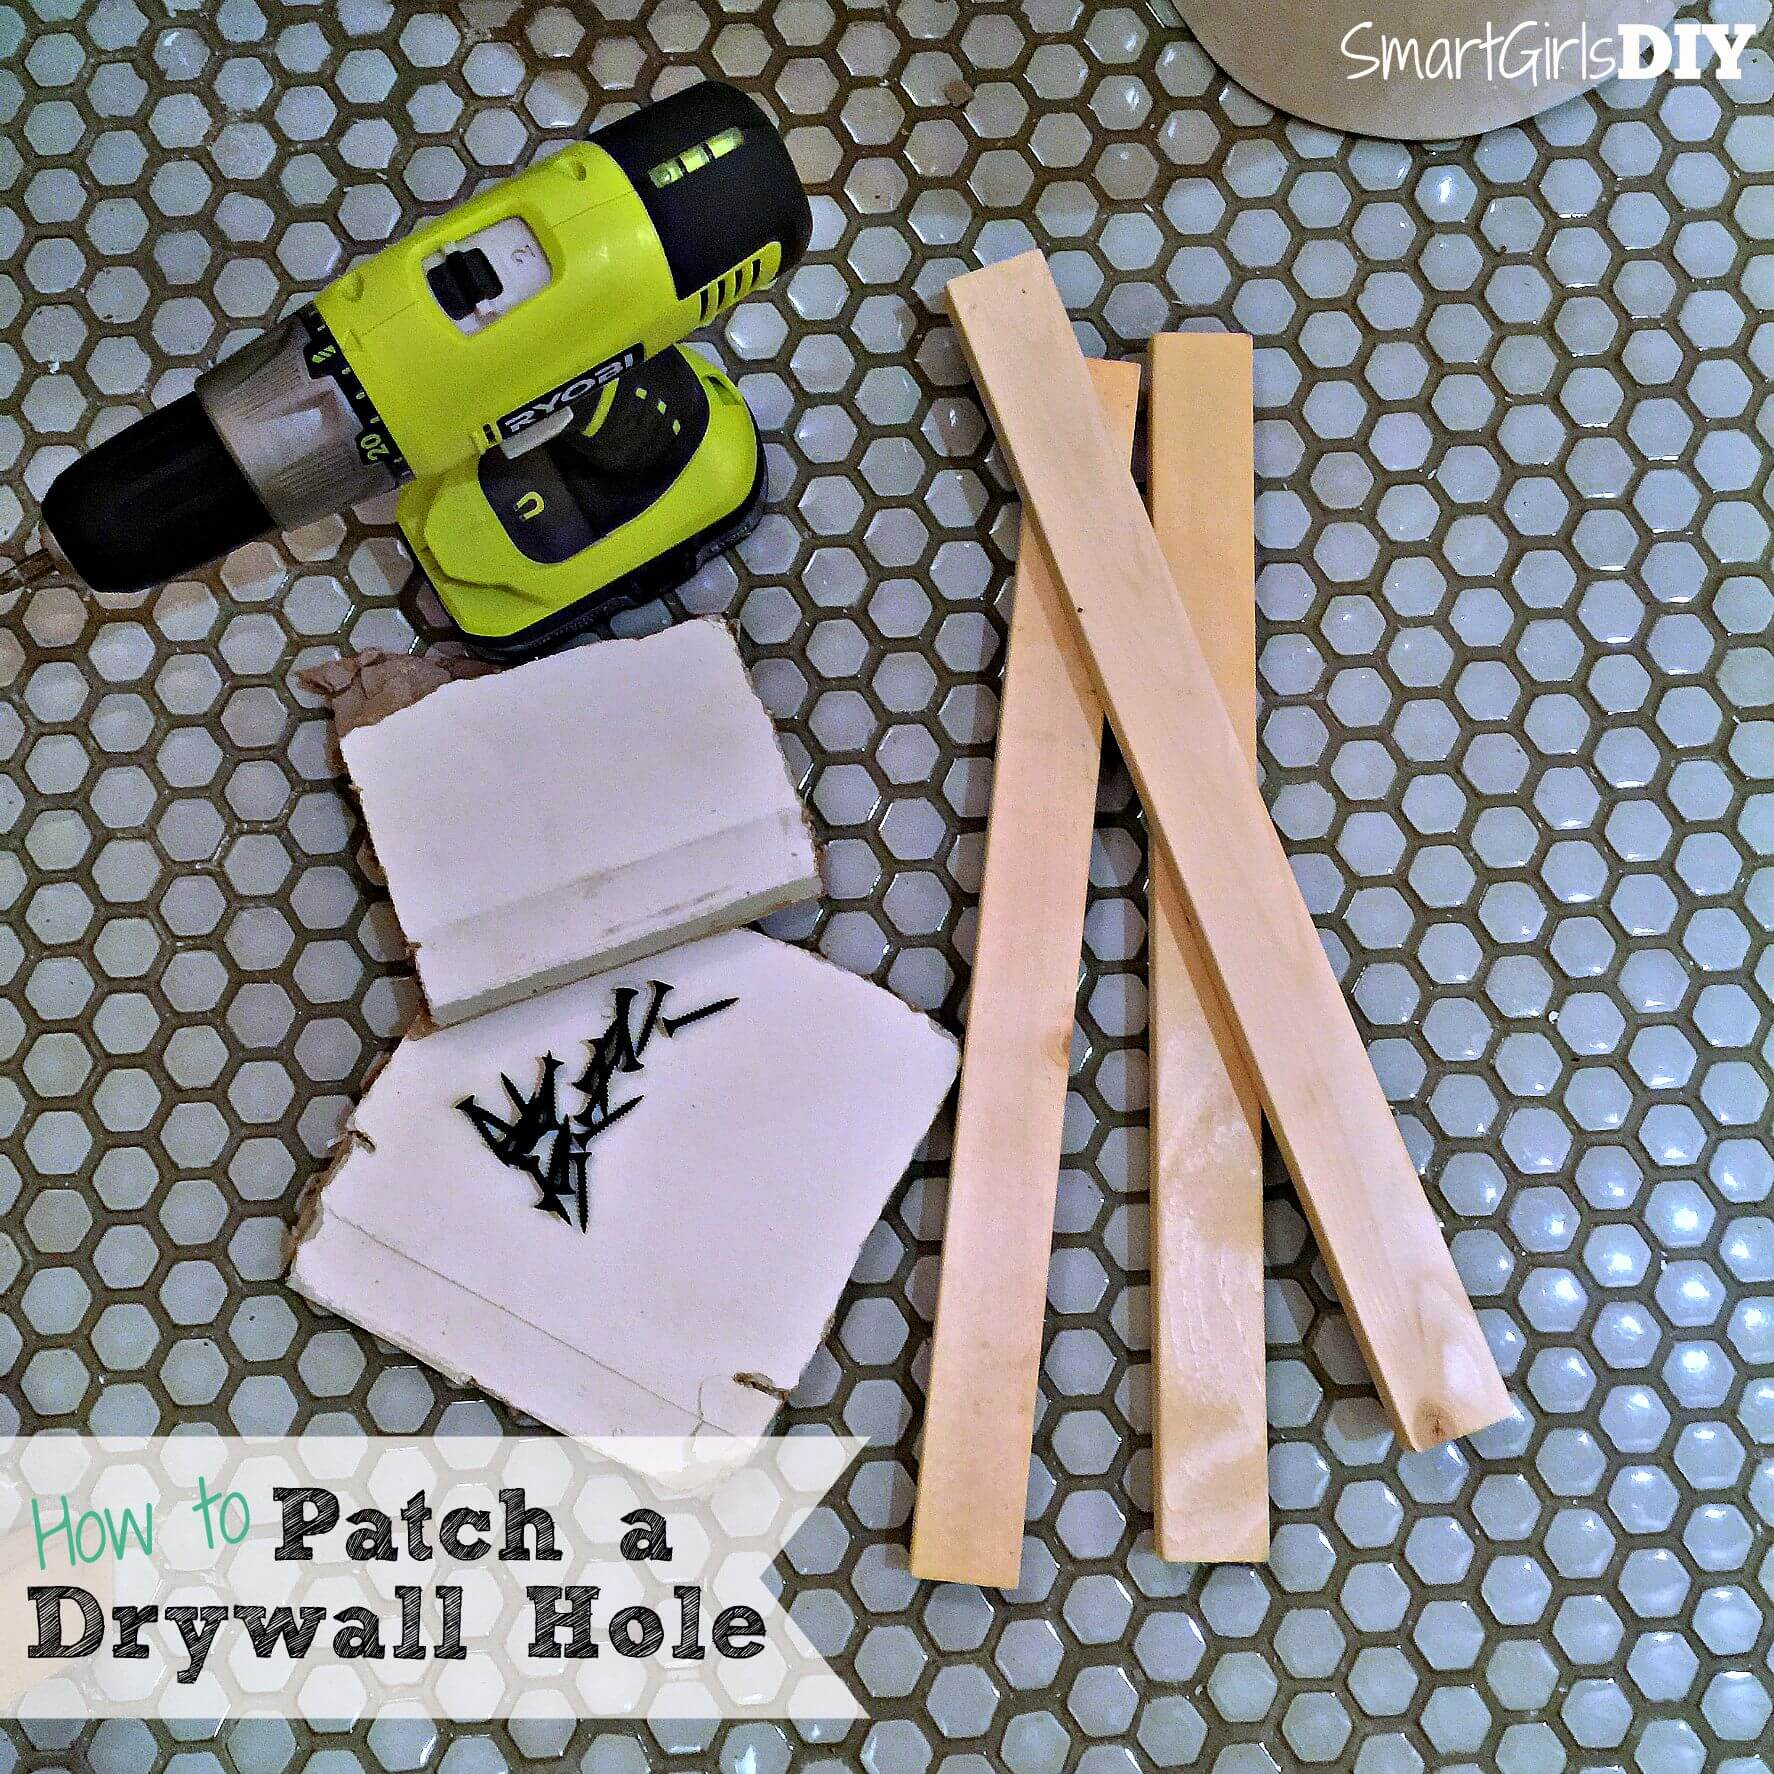 How to Patch a Drywall Hole – Quick Tip Tuesday